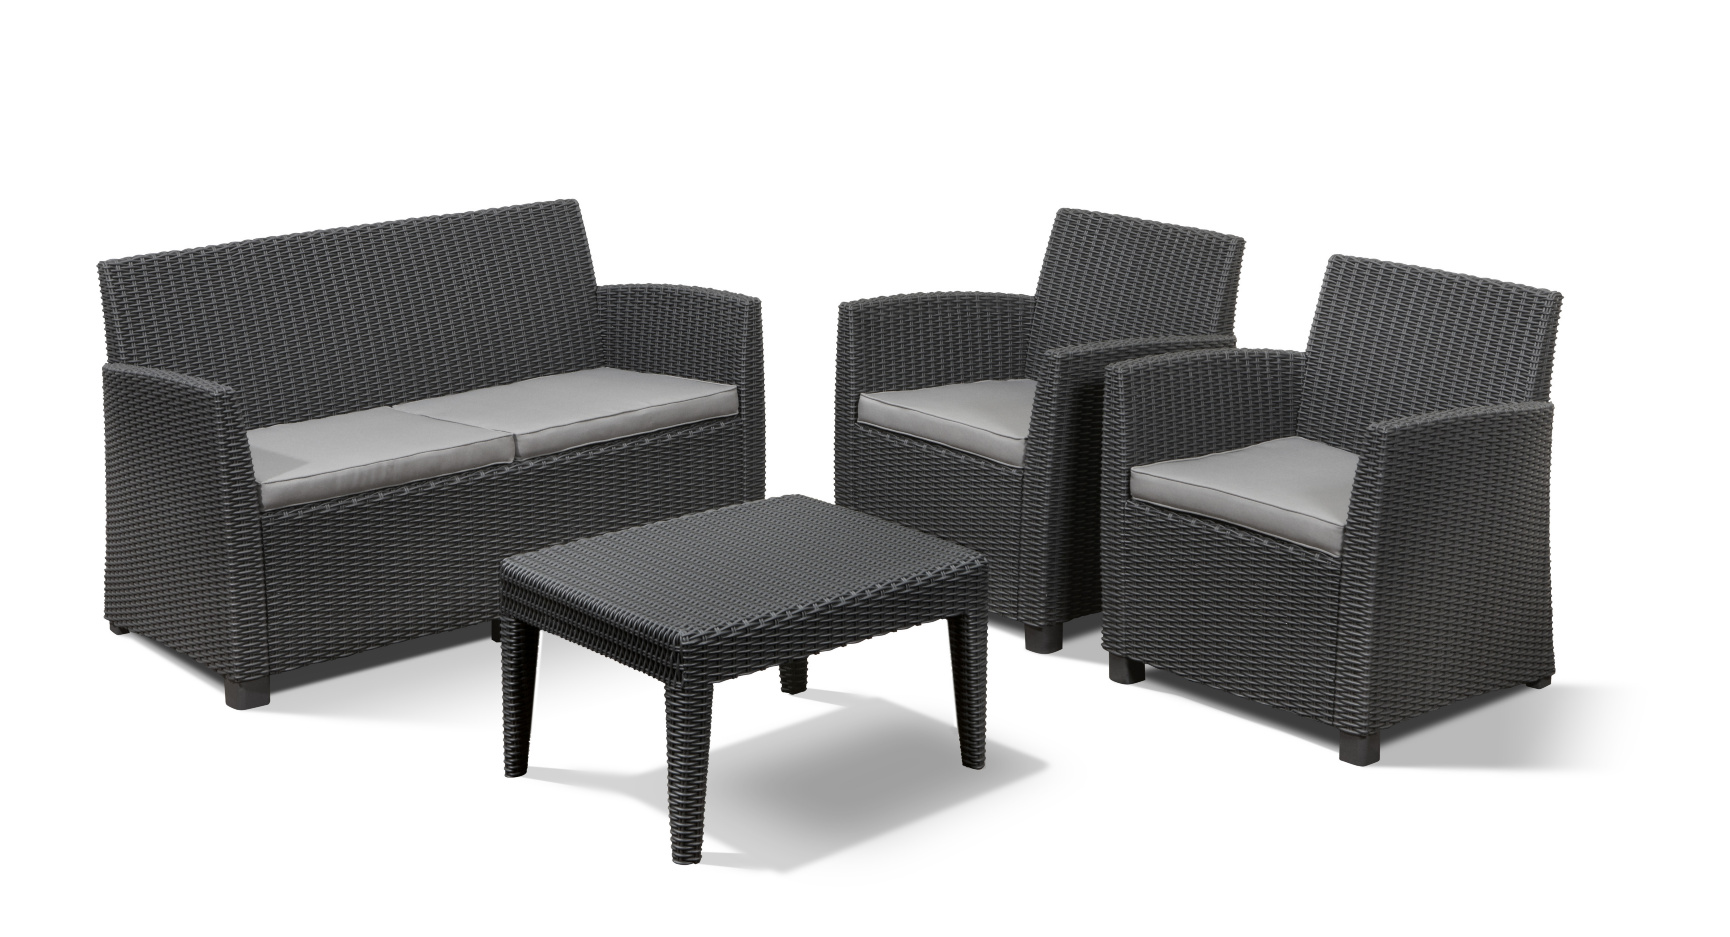 ALLIBERT Corona lounge set graphite - Allibert